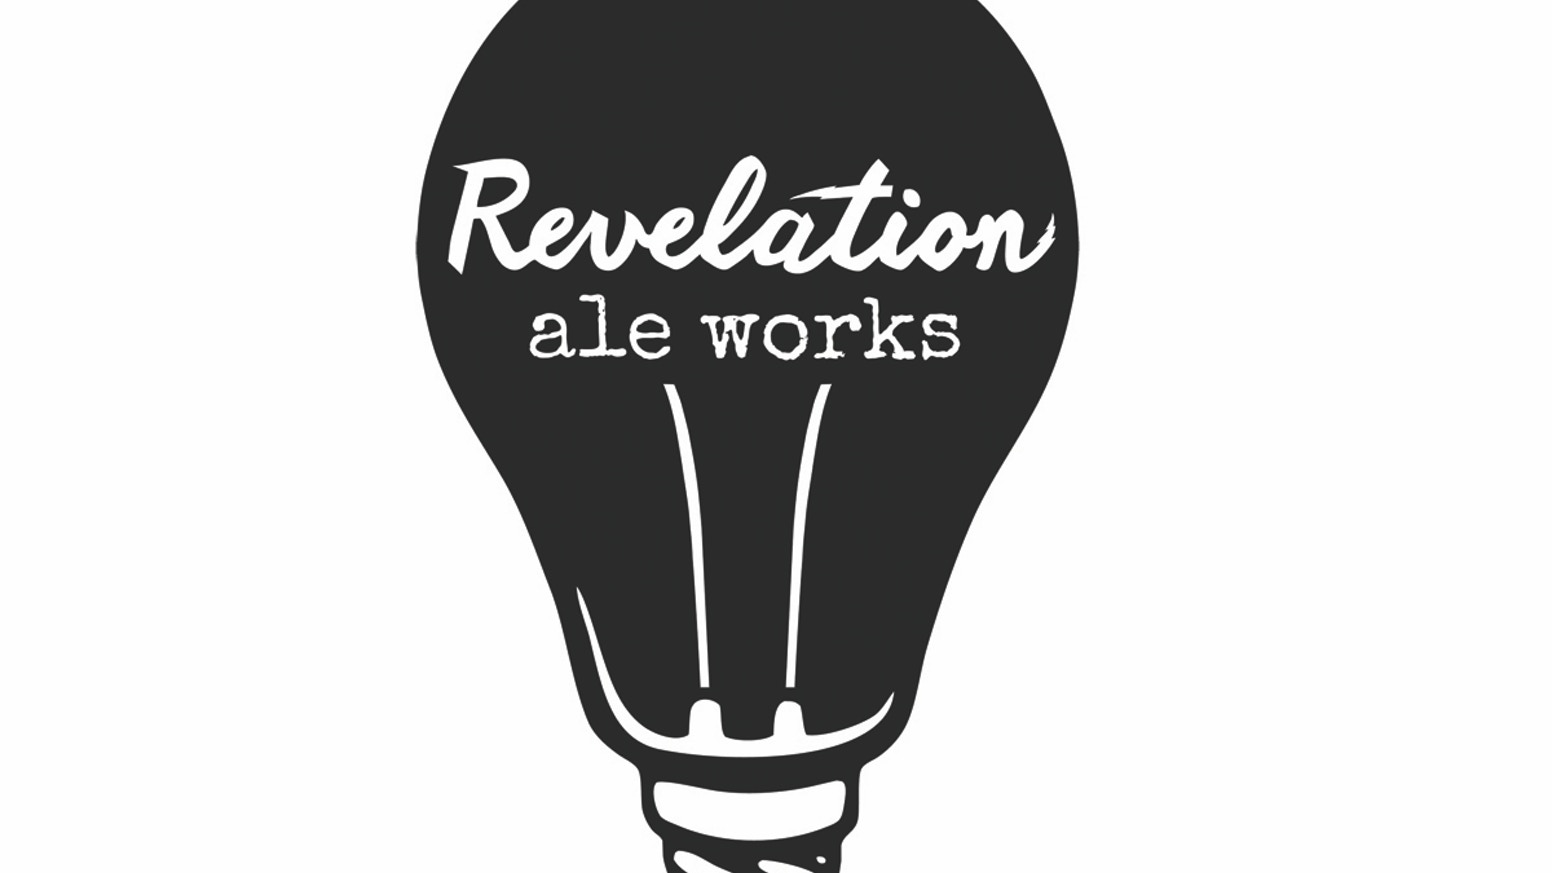 Be a Founder of our Northwest Minnesota craft brewery, Revelation Ale Works, launching in Hallock mid-2016!